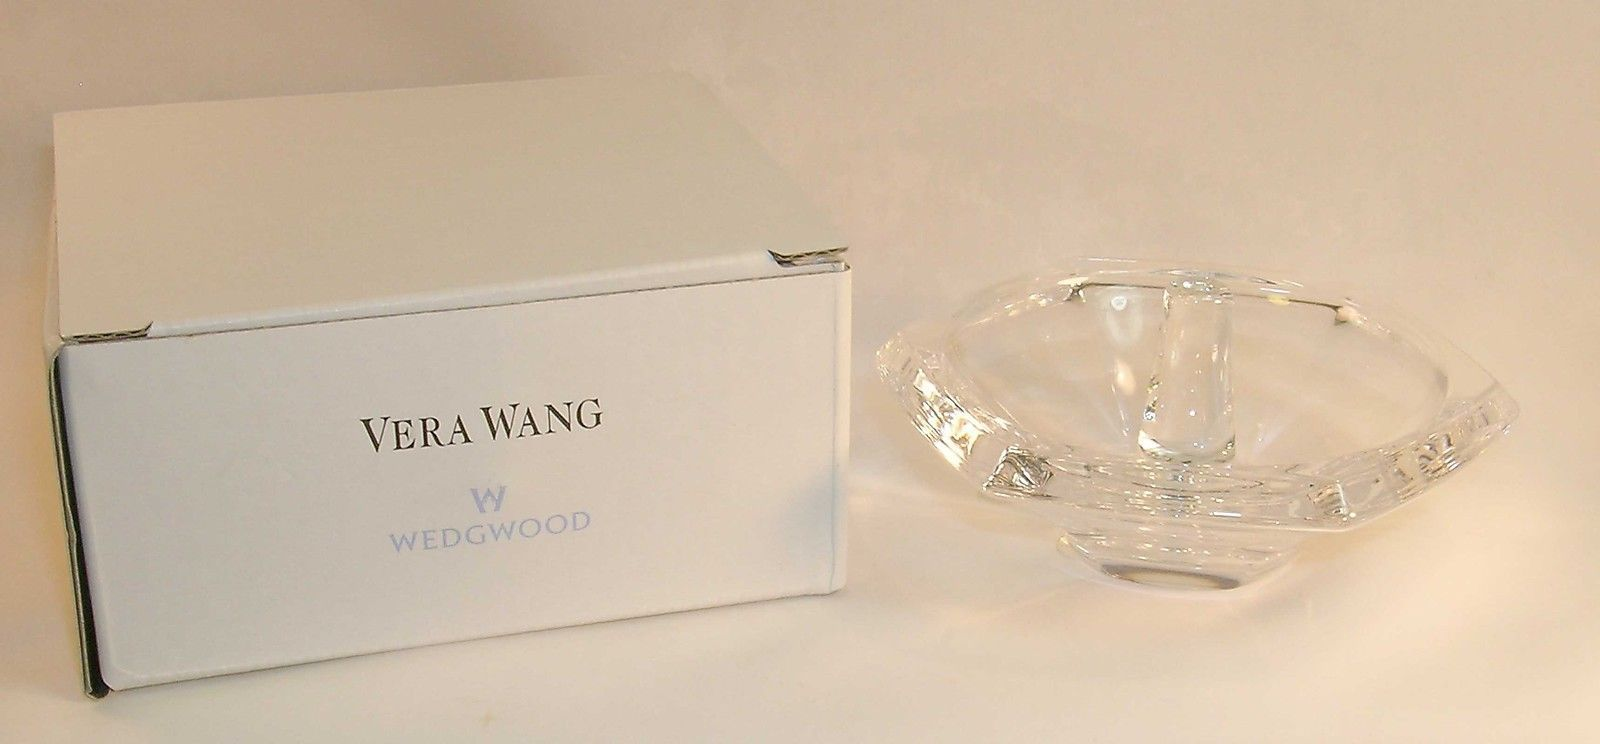 New in Box Vera Wang Orient Crystal Wedding Engagement Ring Holder Great Gift